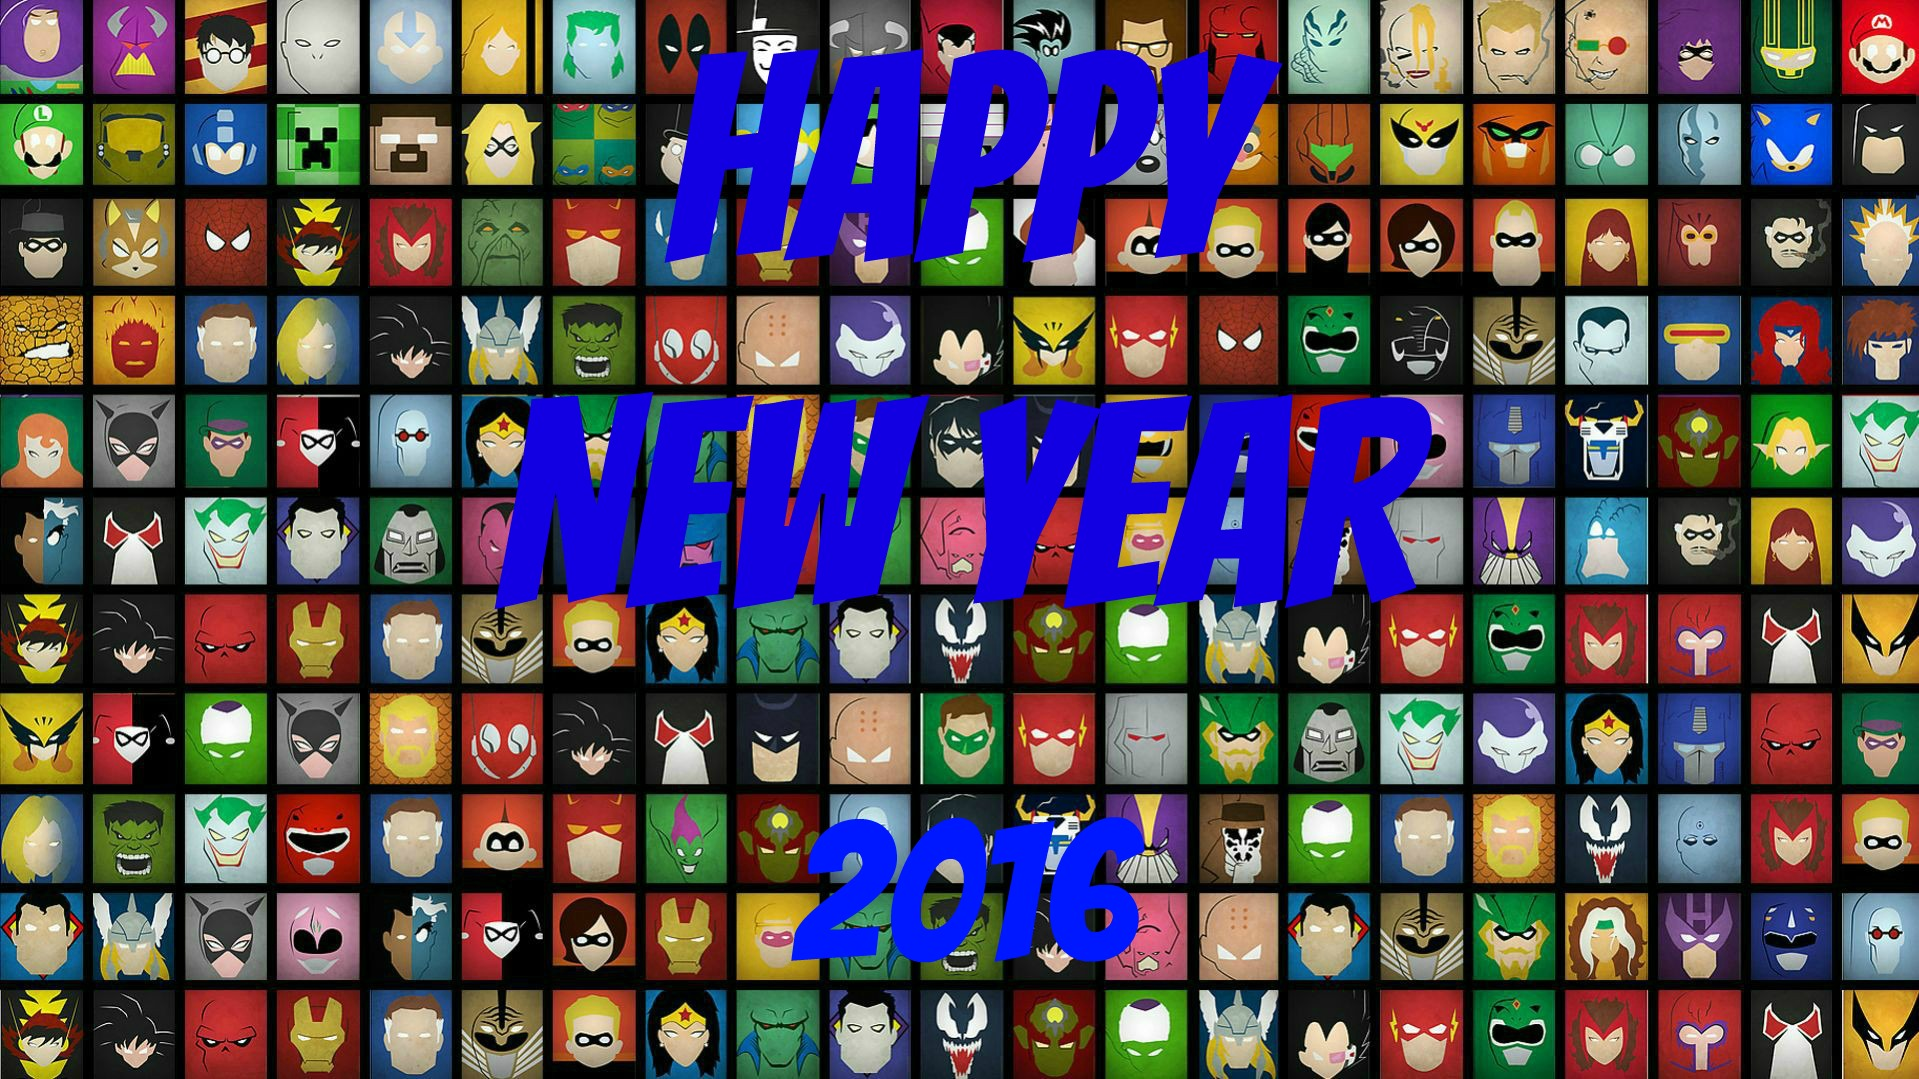 comic-book-faces 2016